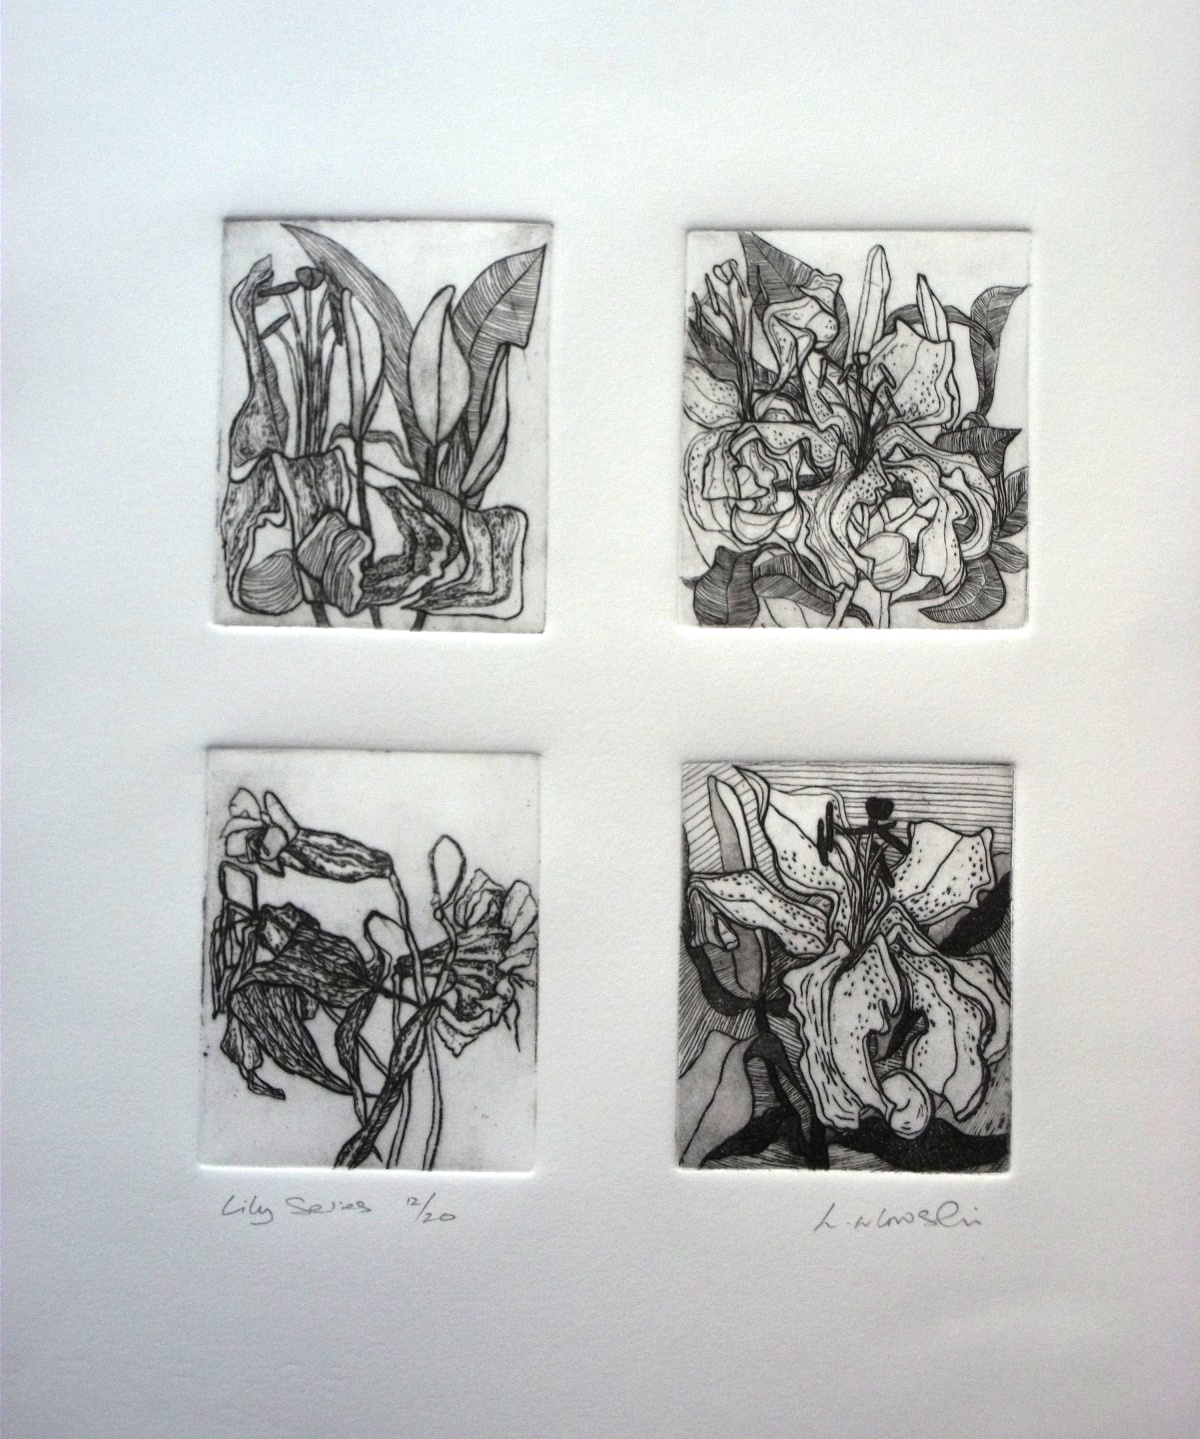 Lily-Series-etching-255-x-220, by the artist Helena Orlowski